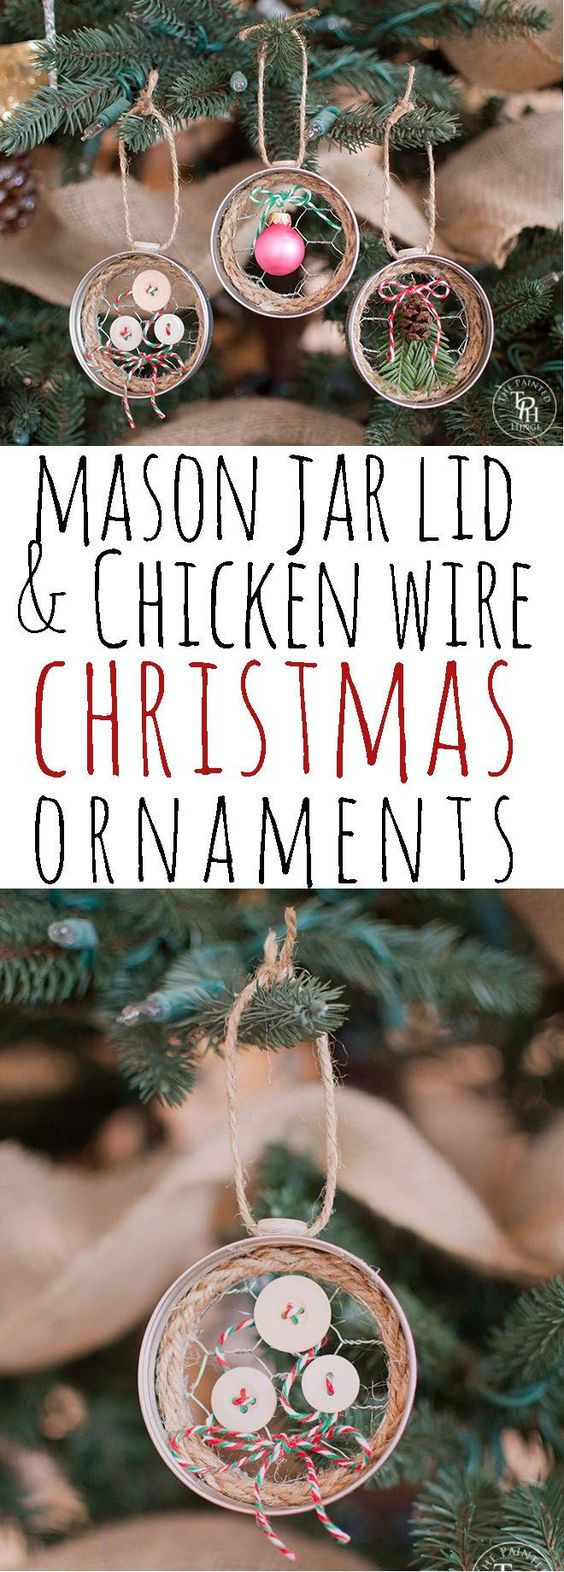 Mason Jar Lid & Chicken Wire Christmas Ornaments.